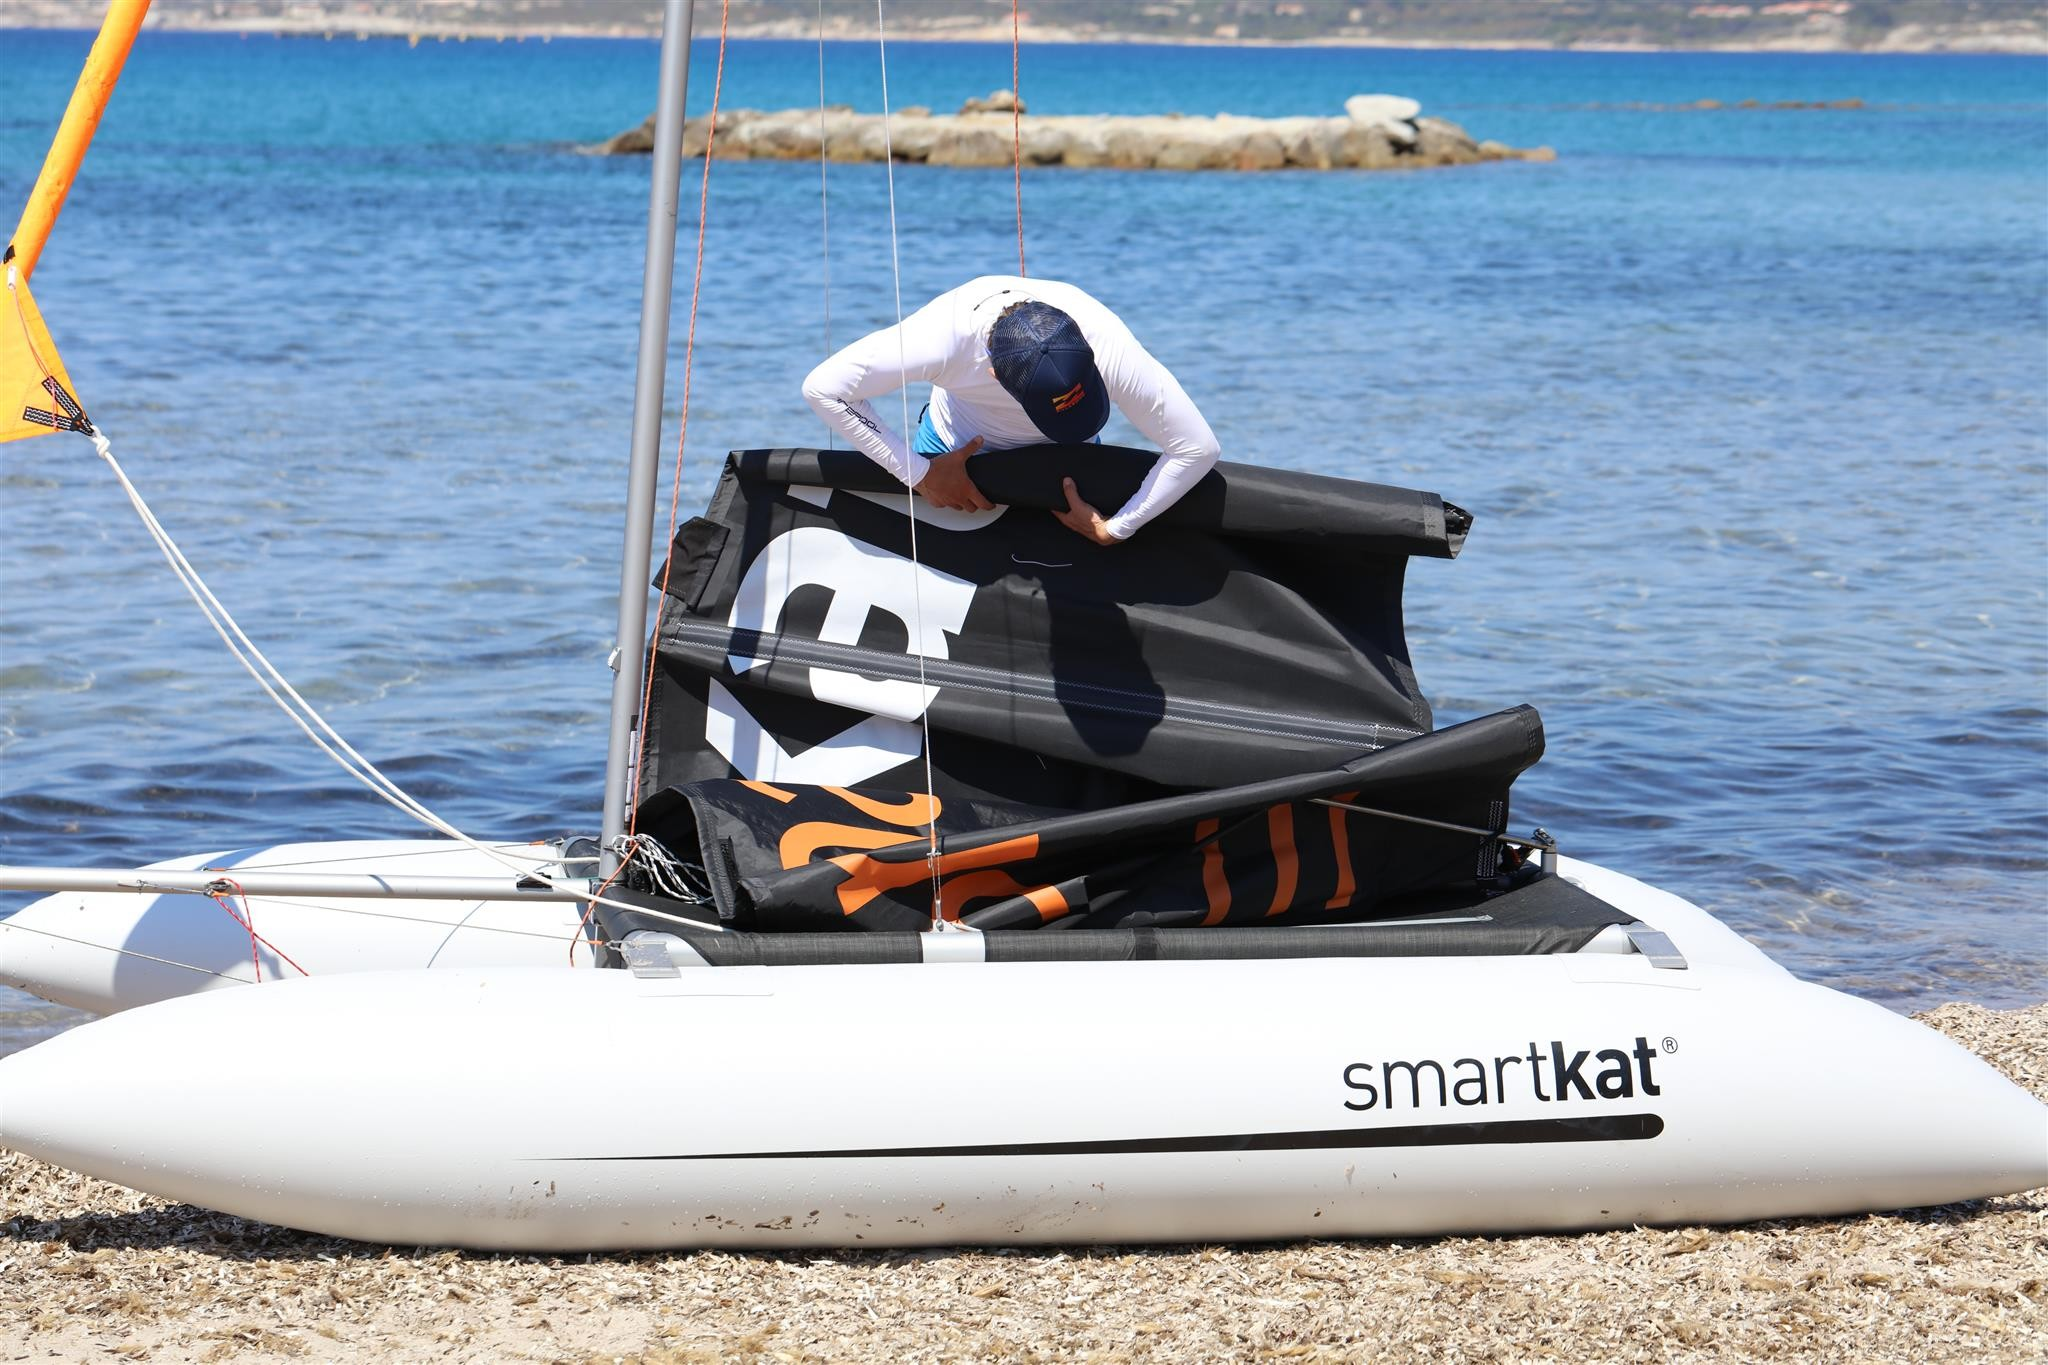 SMARTKAT FOR RENTAL BUSINESS. GREAT RETURN ON INVESTMENT!